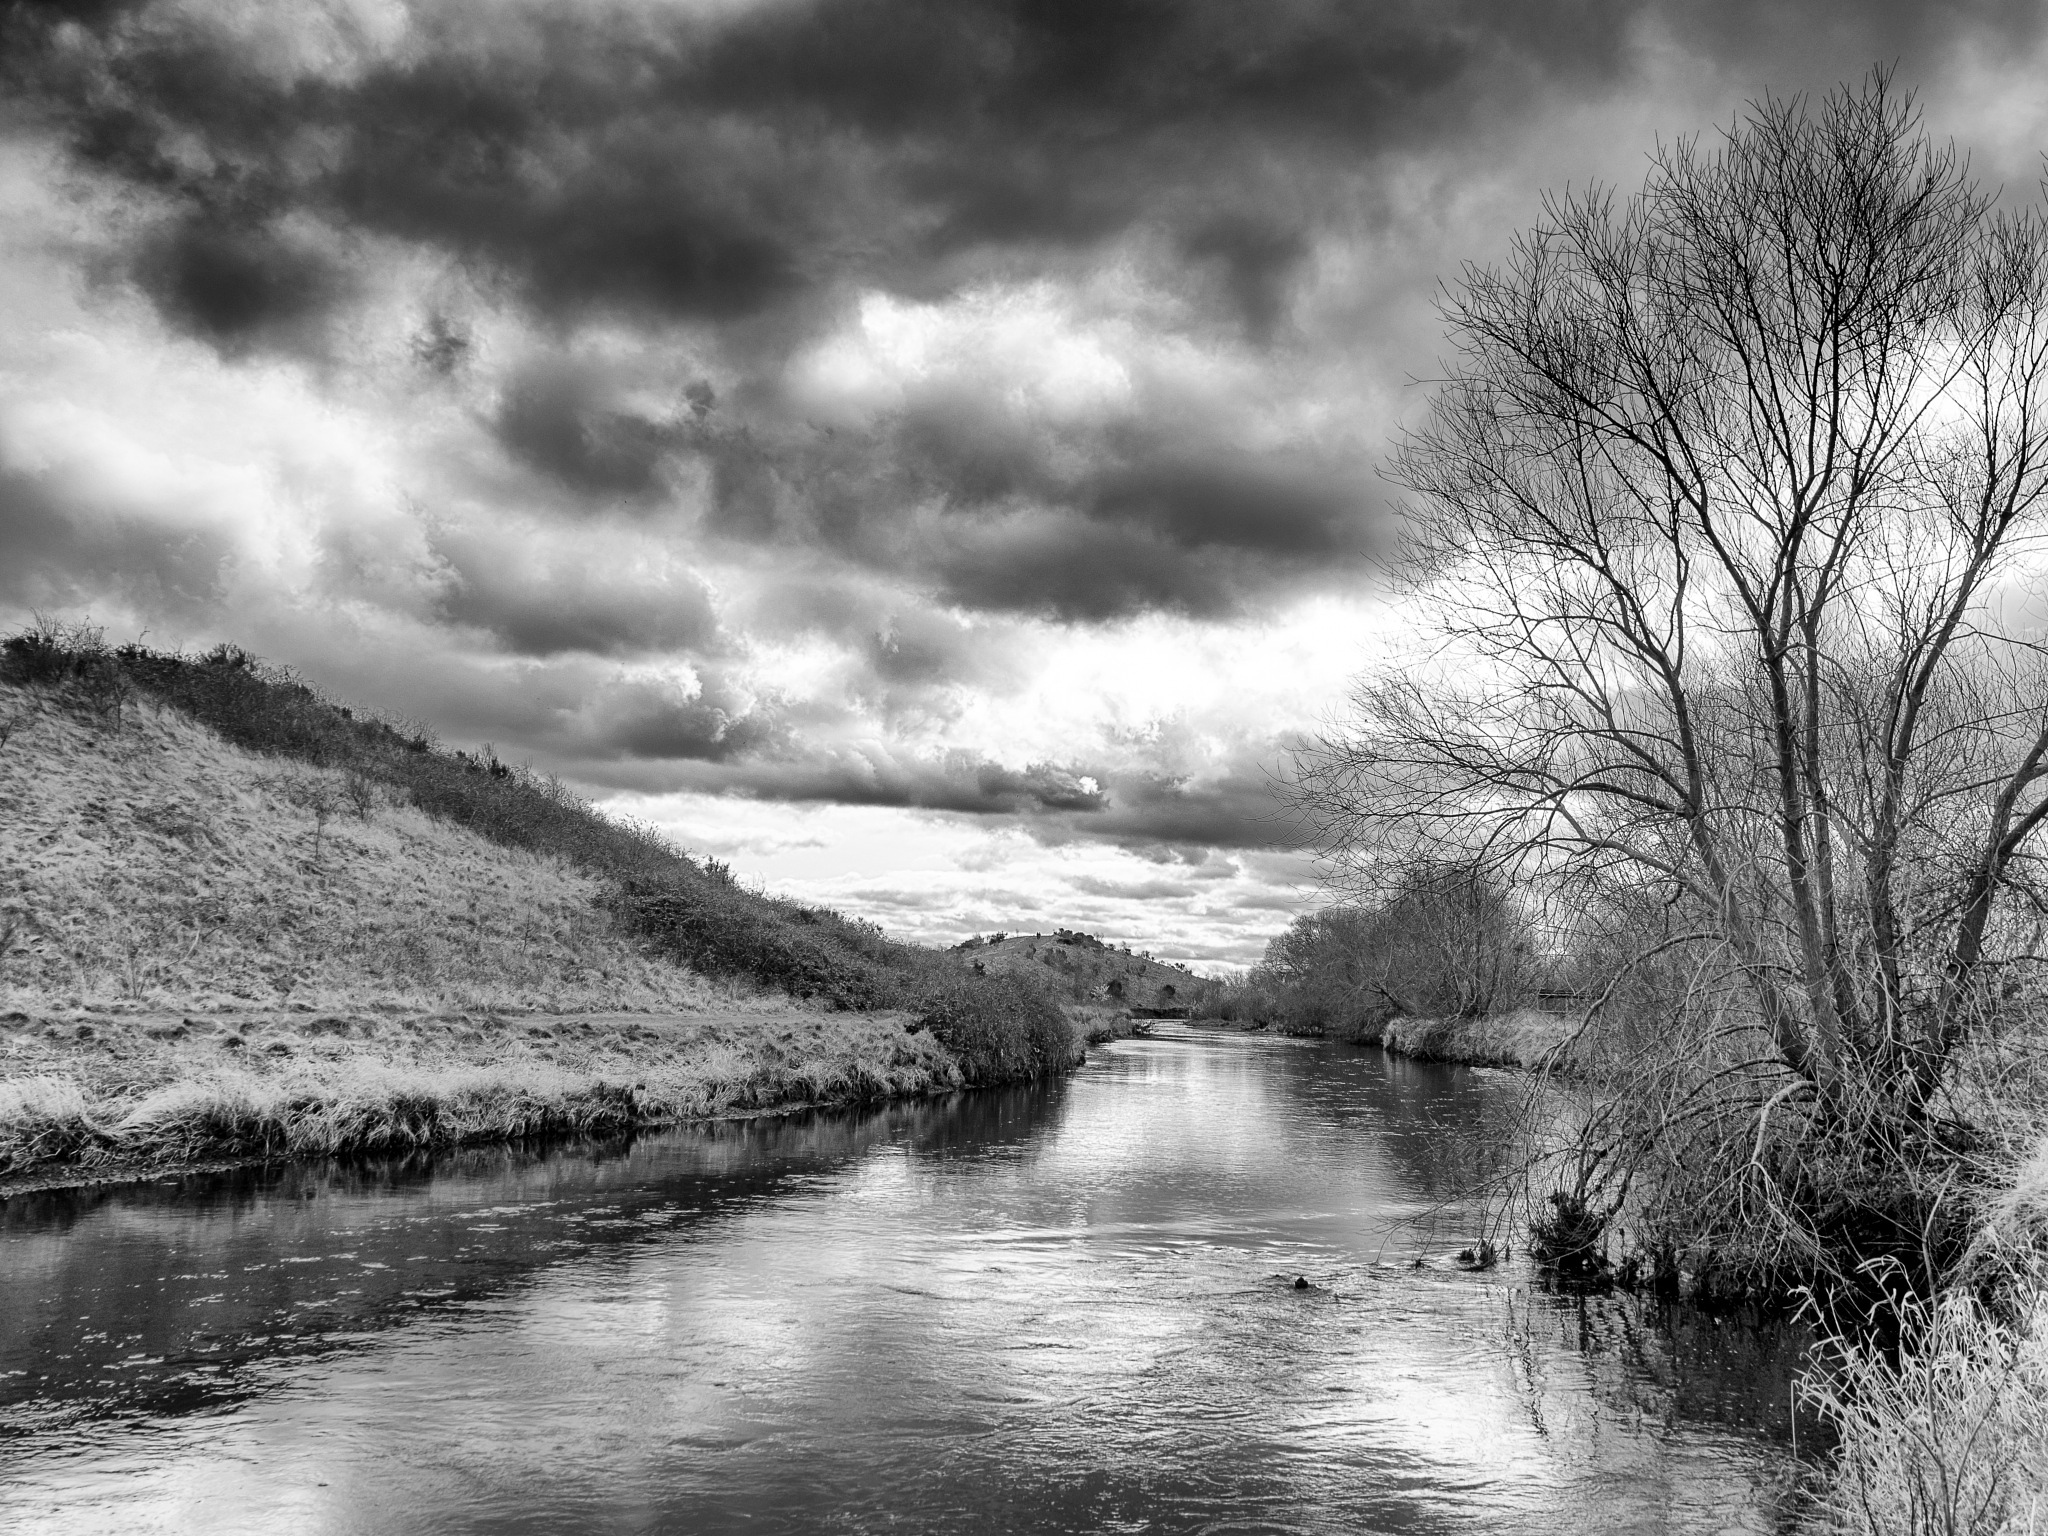 River Tame by Sarah Walters